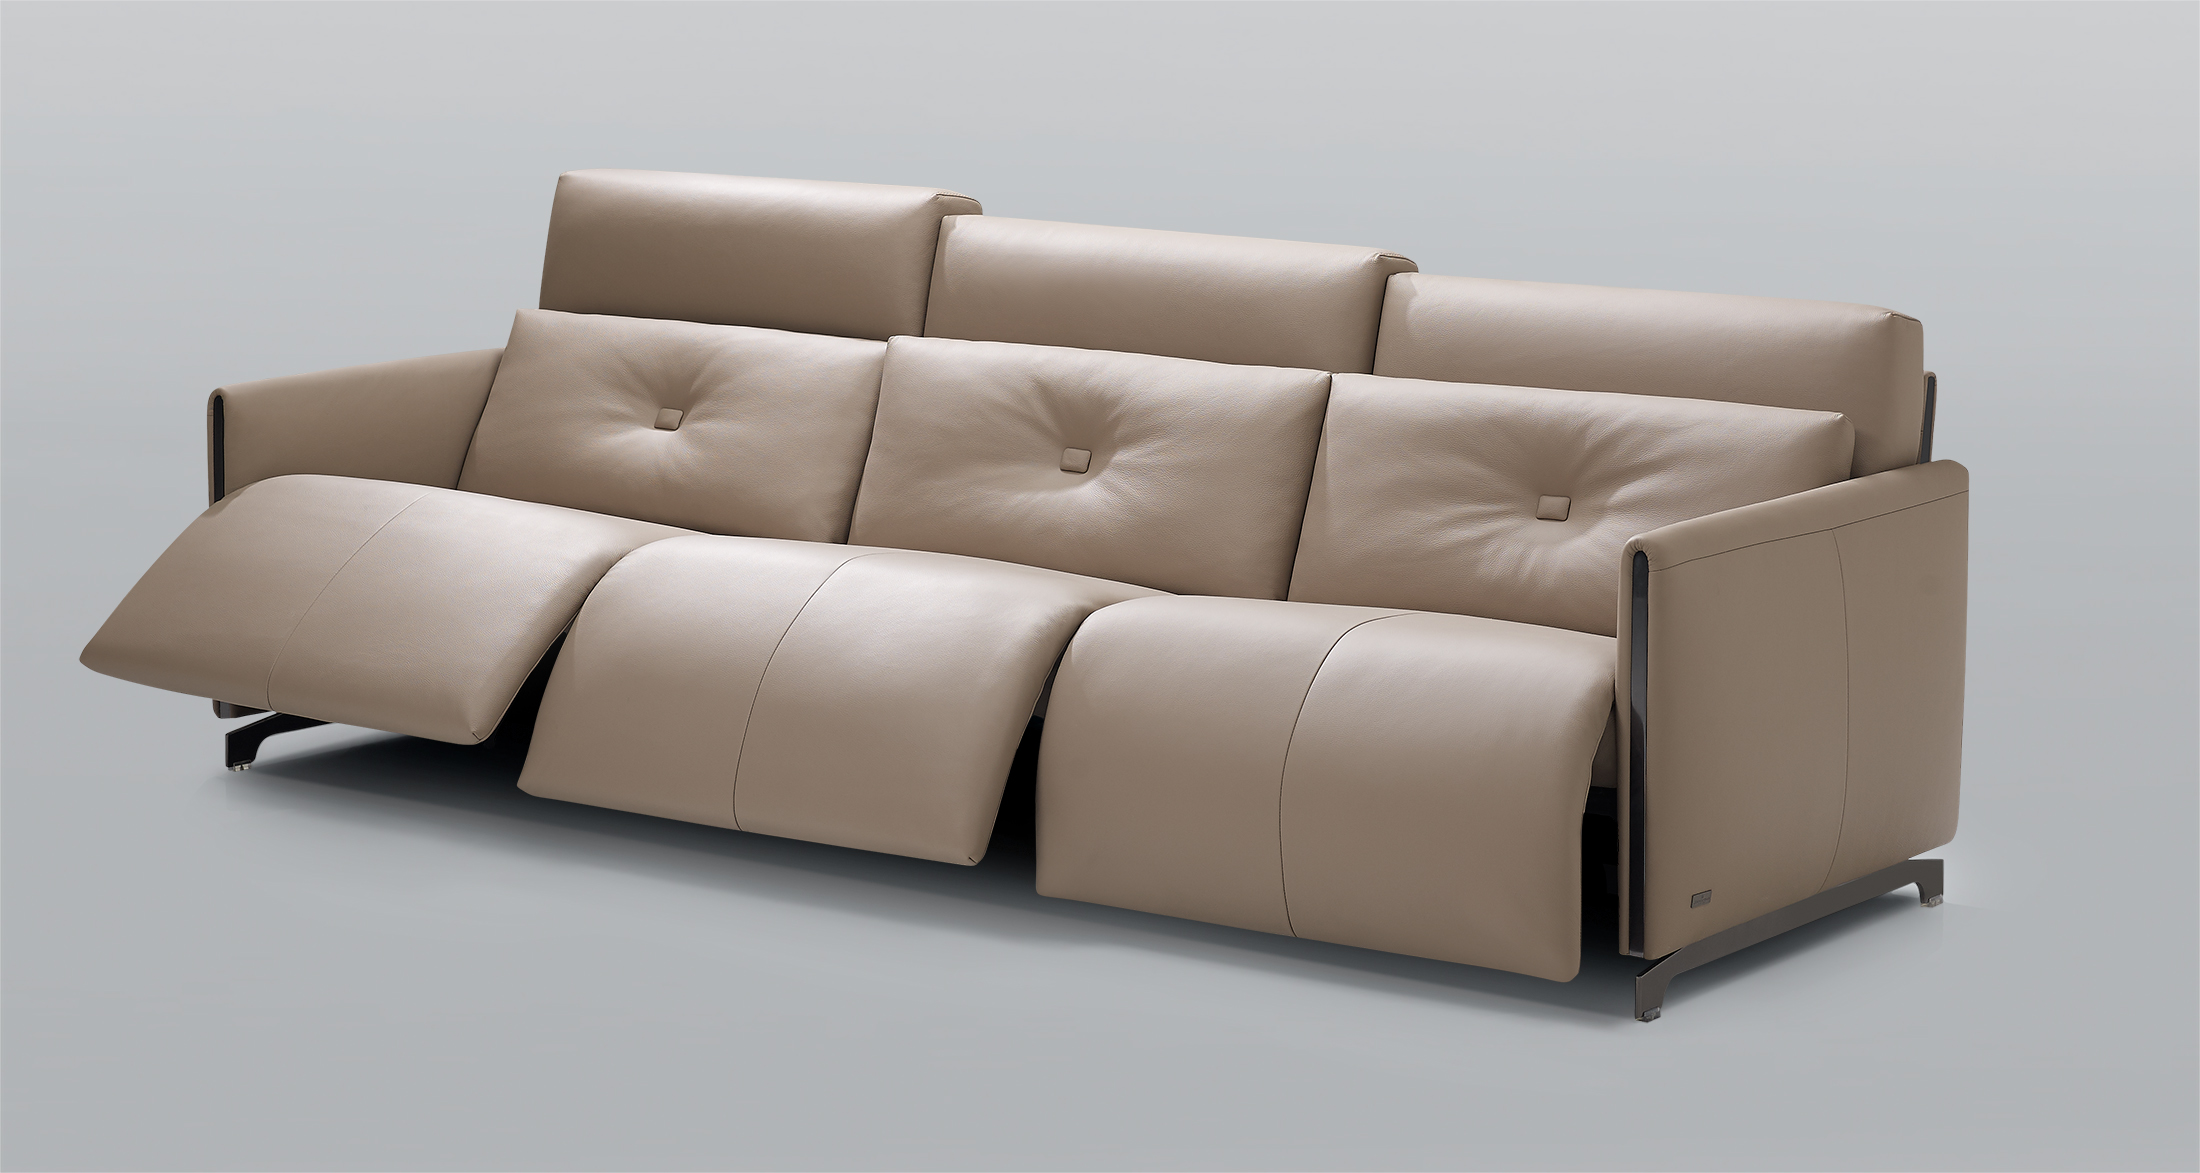 squarerooms kelvin giormani sofas couches leather luxury luxe luxurious new products furniture singapore italian buy abile beige cream